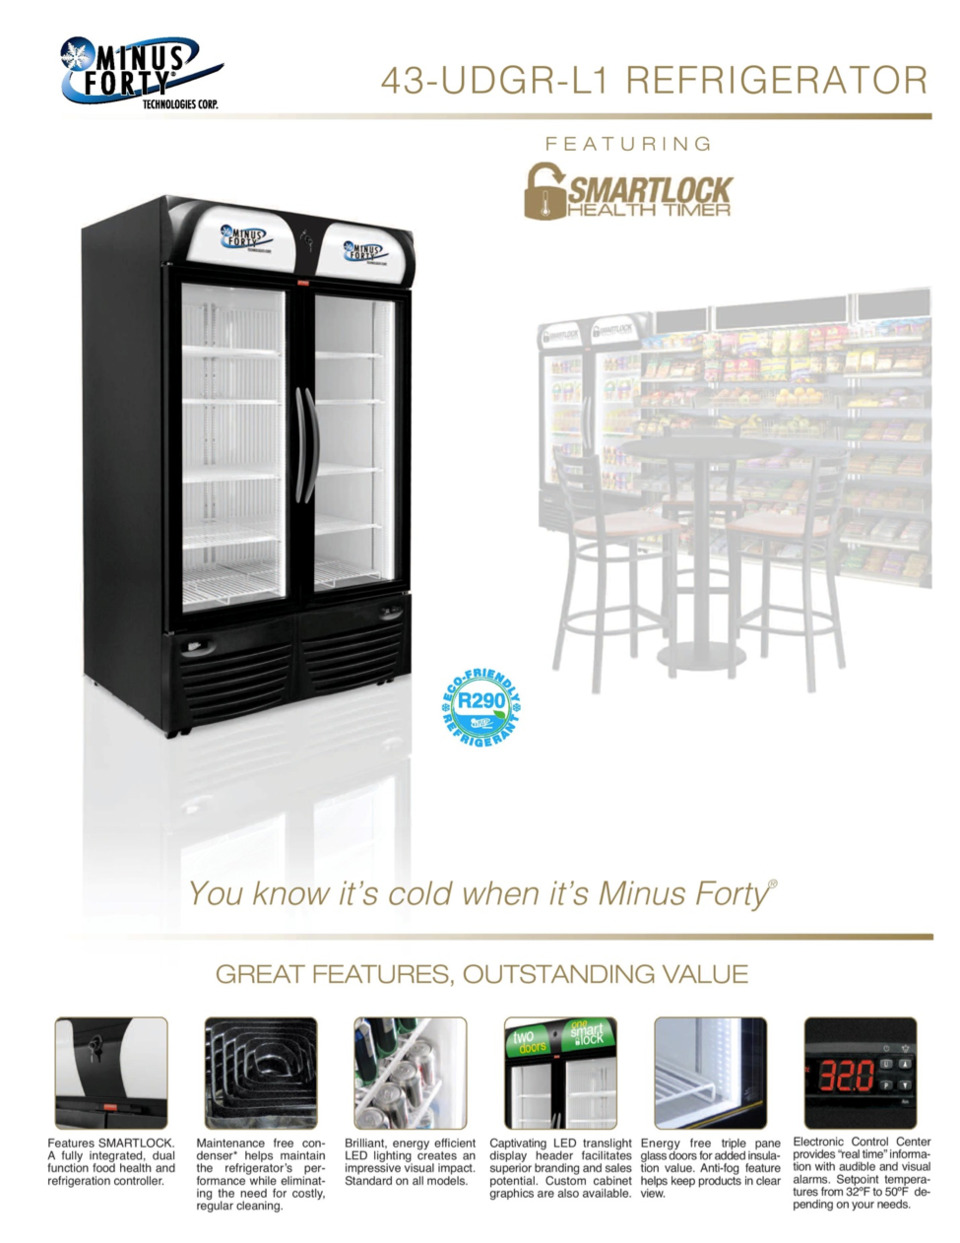 Minus Forty Announces Release Of New Double Door Cooler With